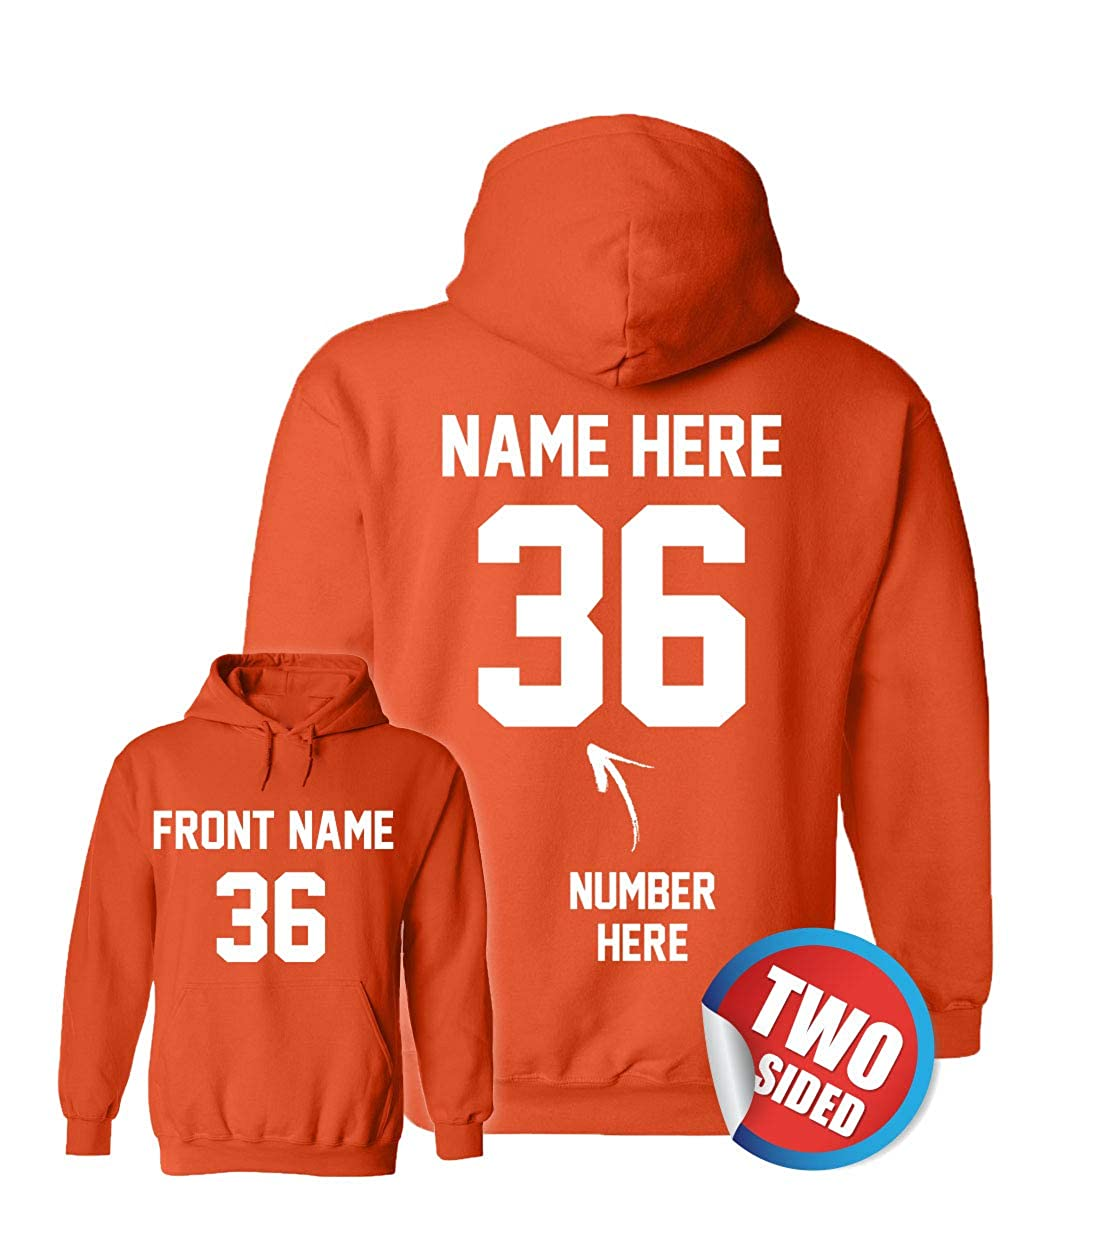 Custom Hoodies - Add Your Name & Number - 2...